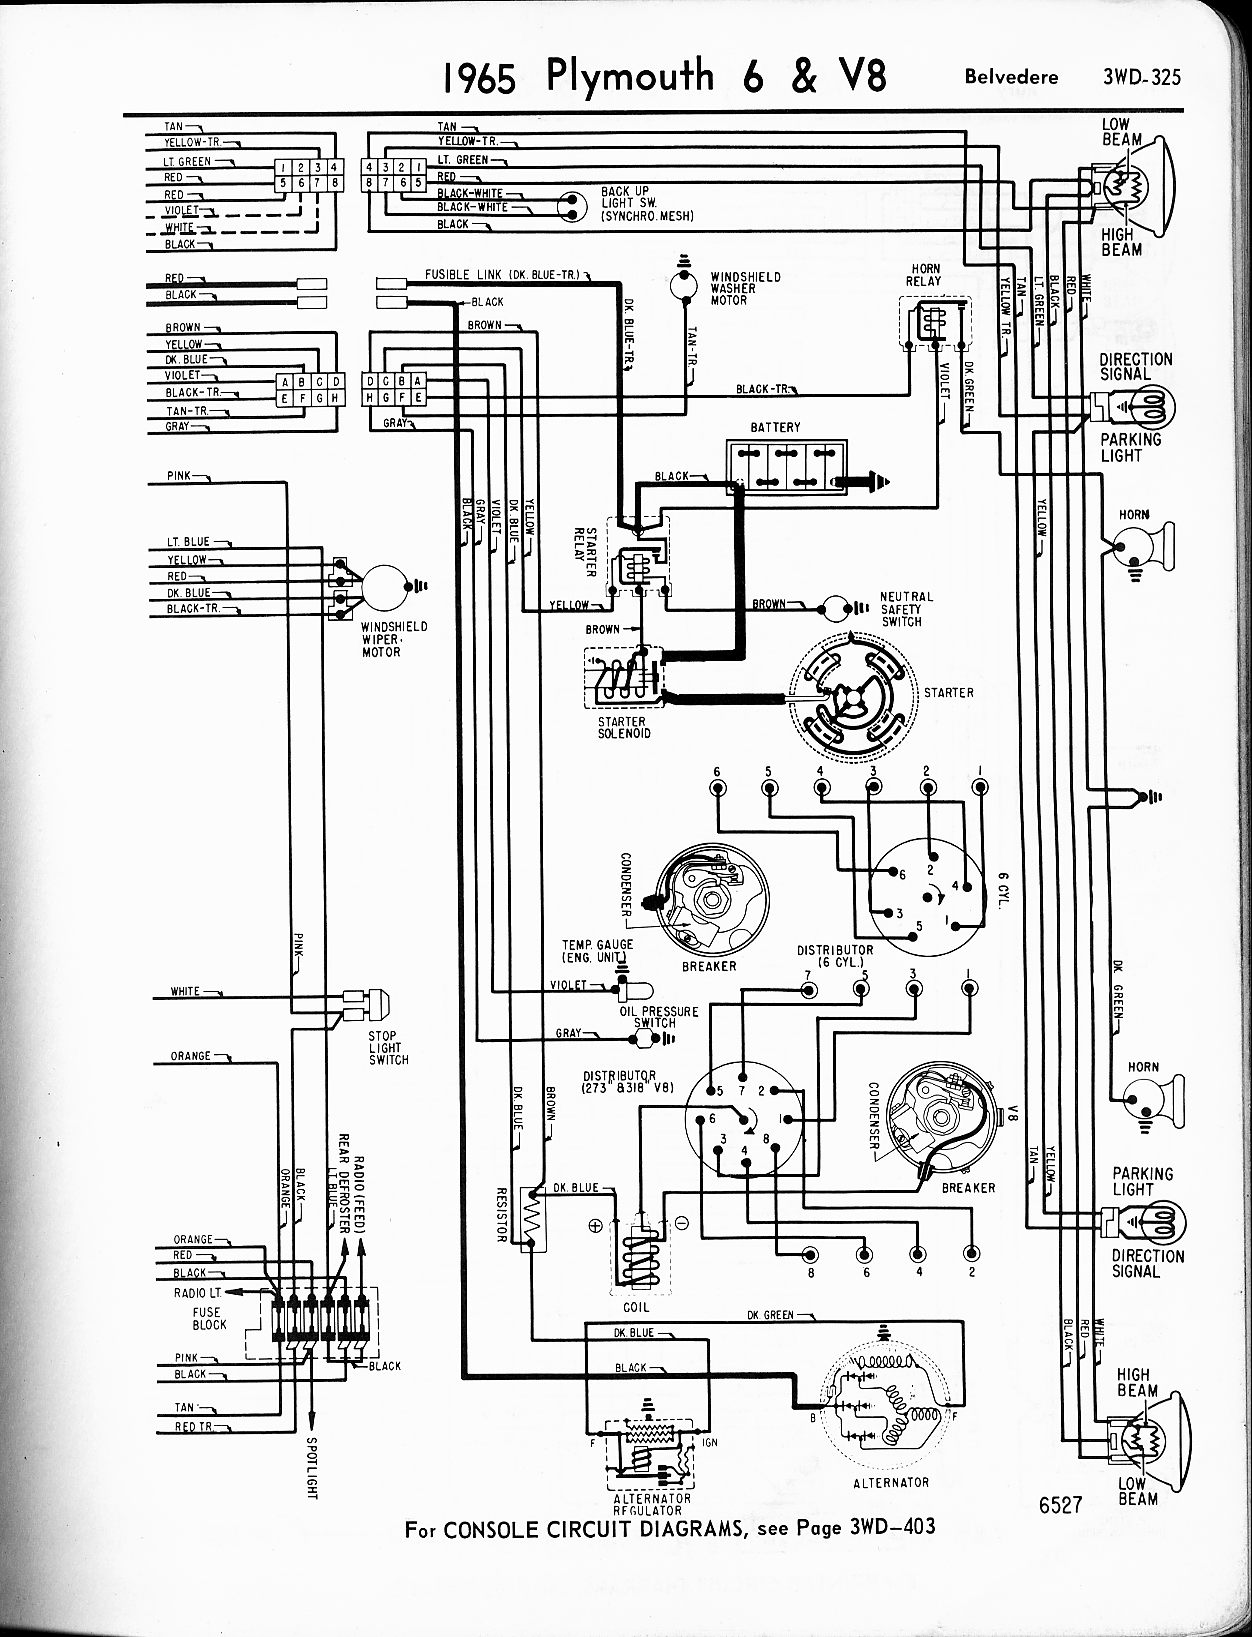 1968 roadrunner firewall wiring diagram schematics wiring data \u2022 av wiring diagrams 1968 roadrunner firewall wiring diagram images gallery